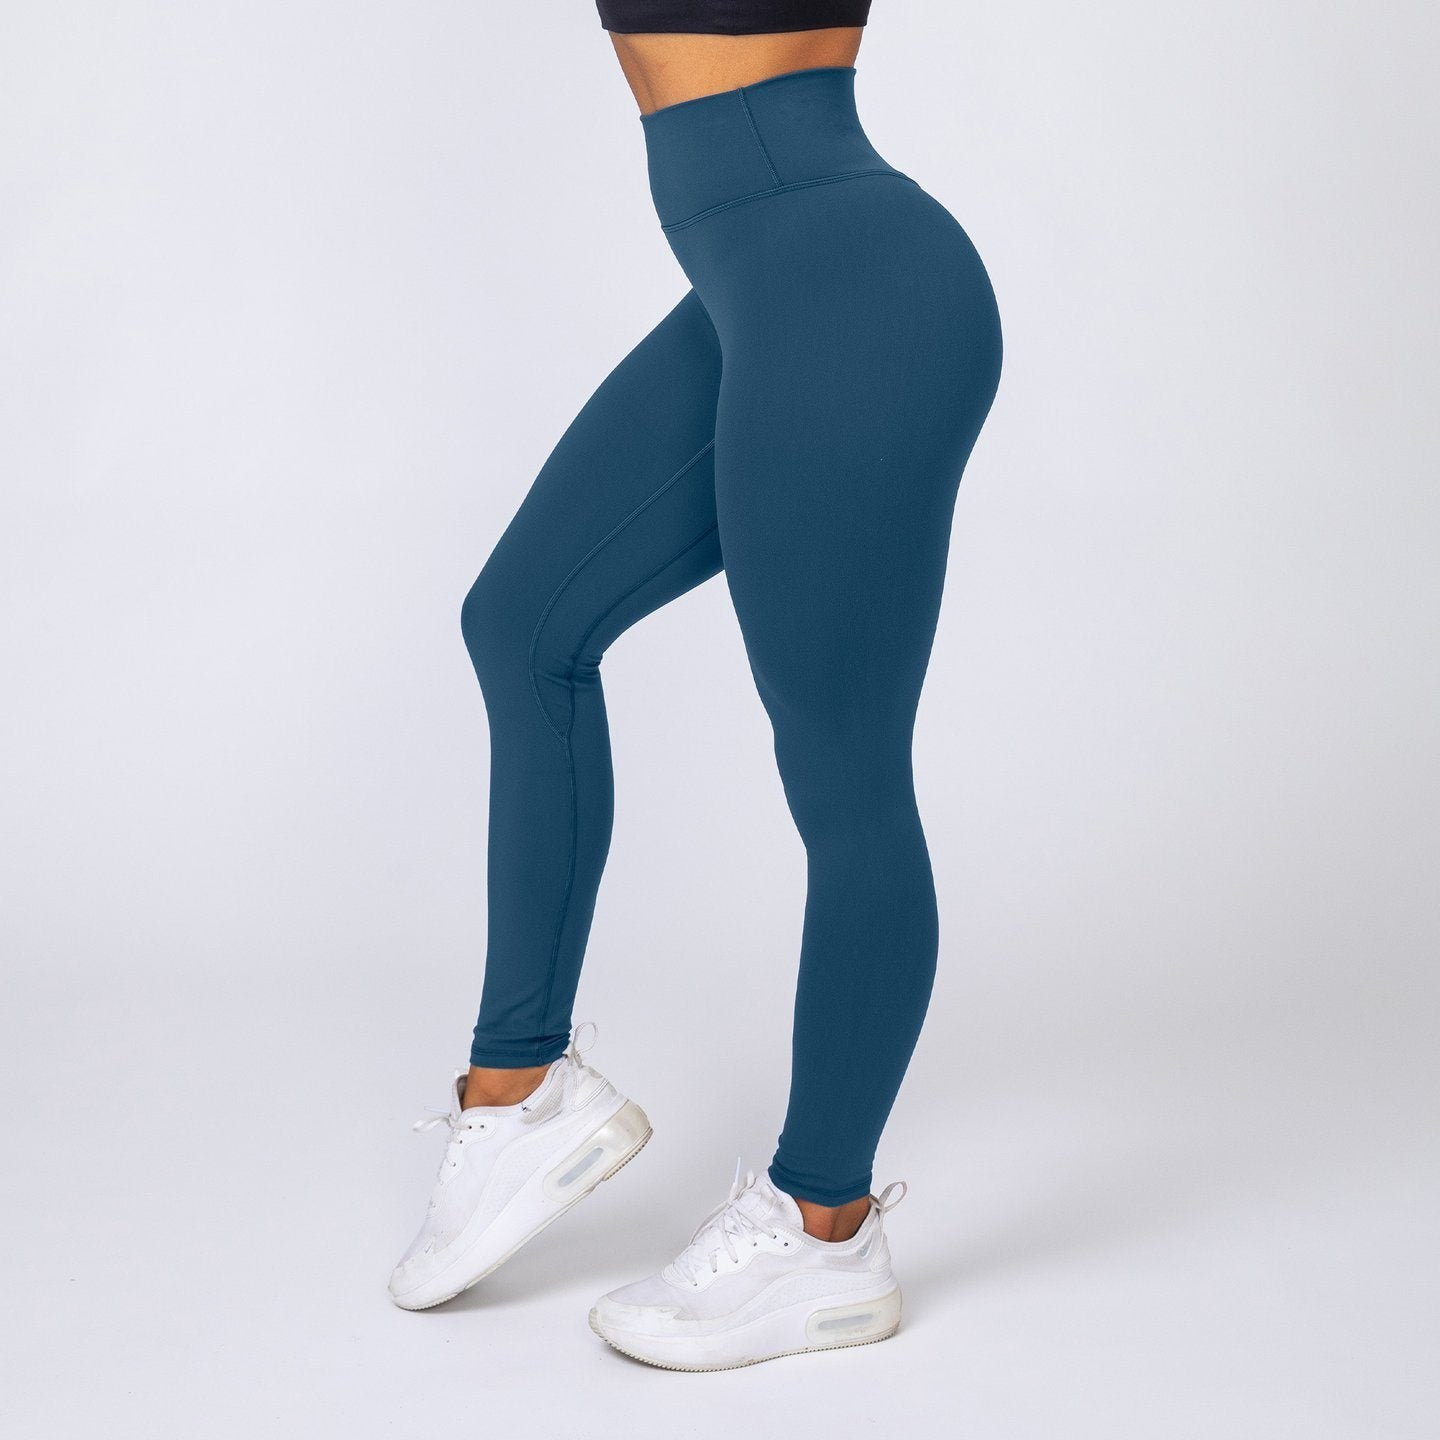 Muscle Nation v2 Butter Full Length High Waist Leggings - Marine